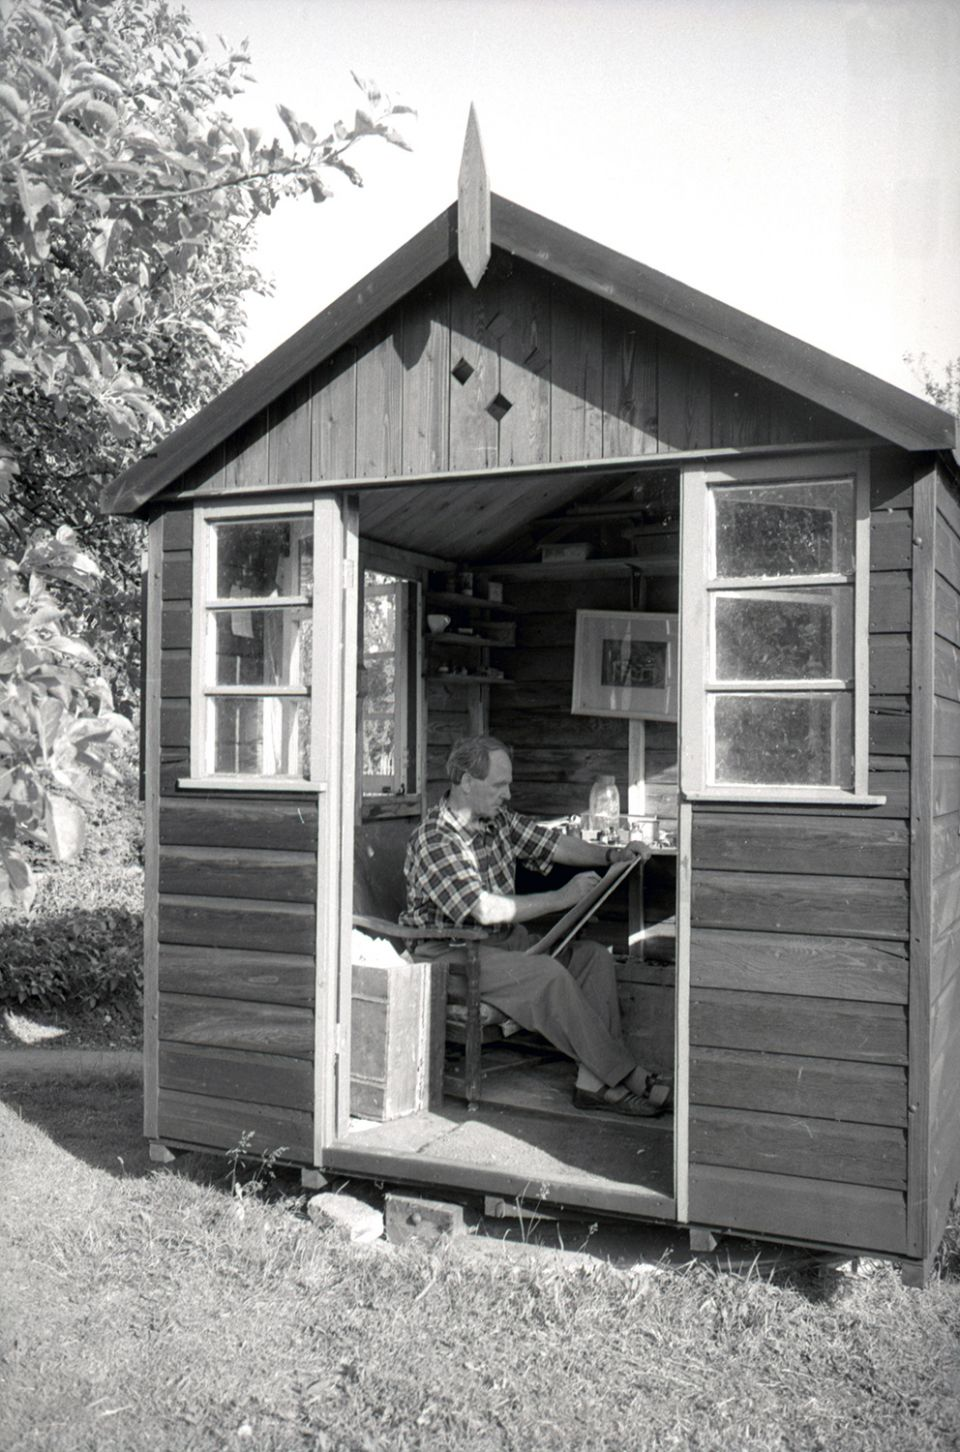 Historical shot of the Summer House